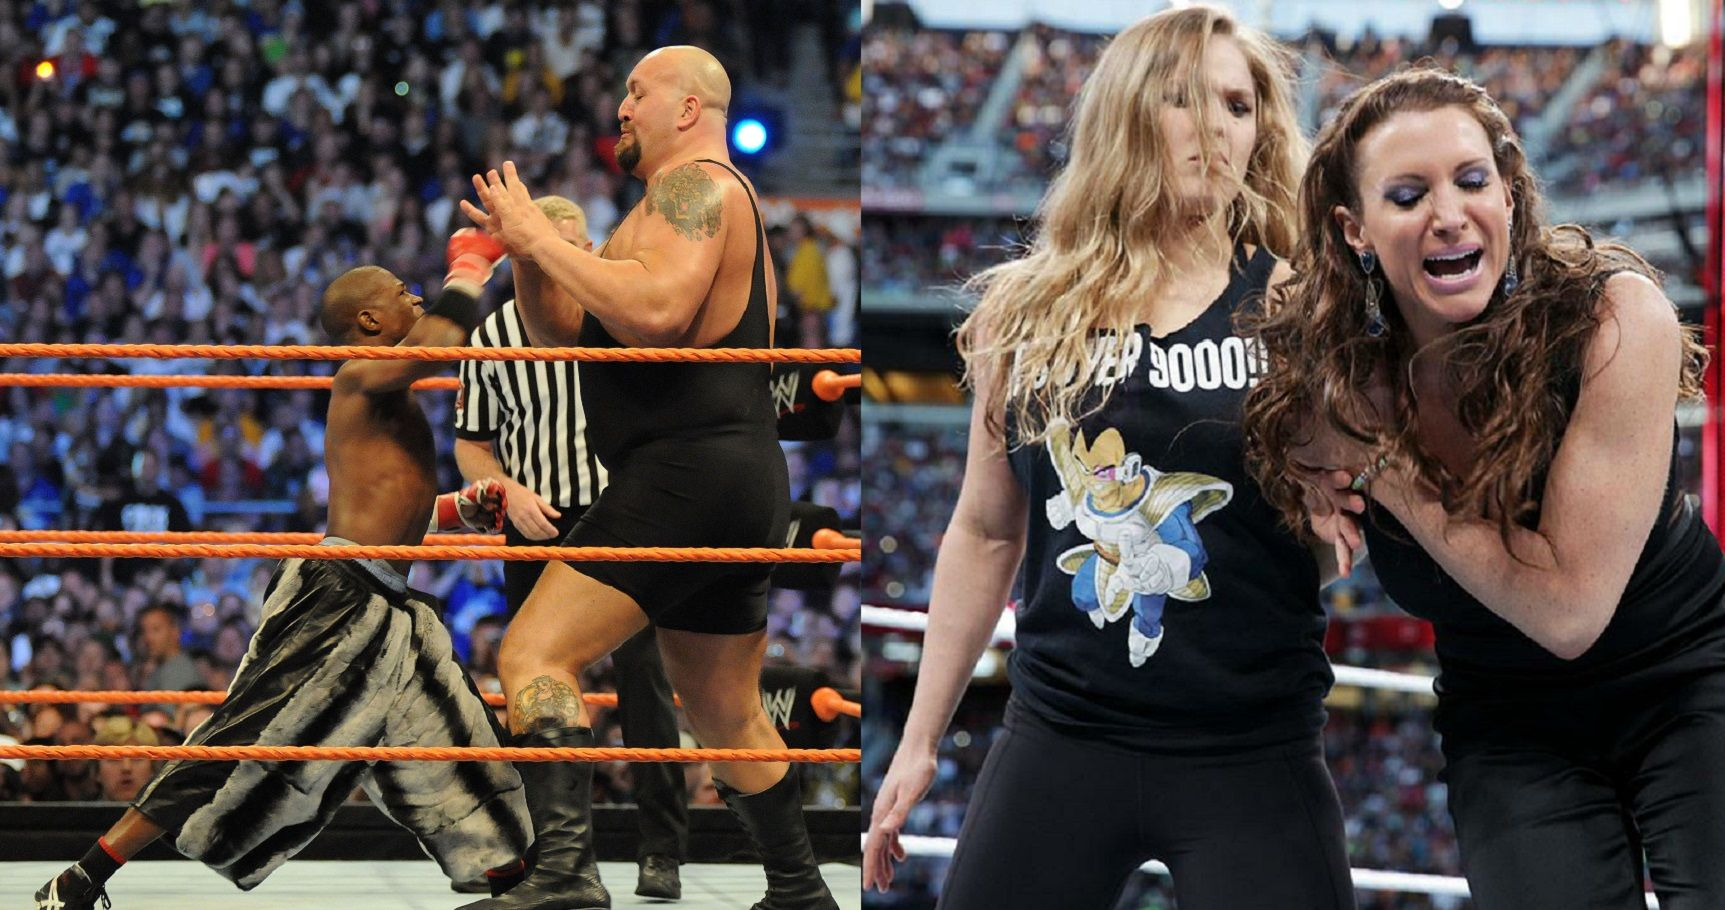 The 15 Best Celebrity Appearances At WrestleMania